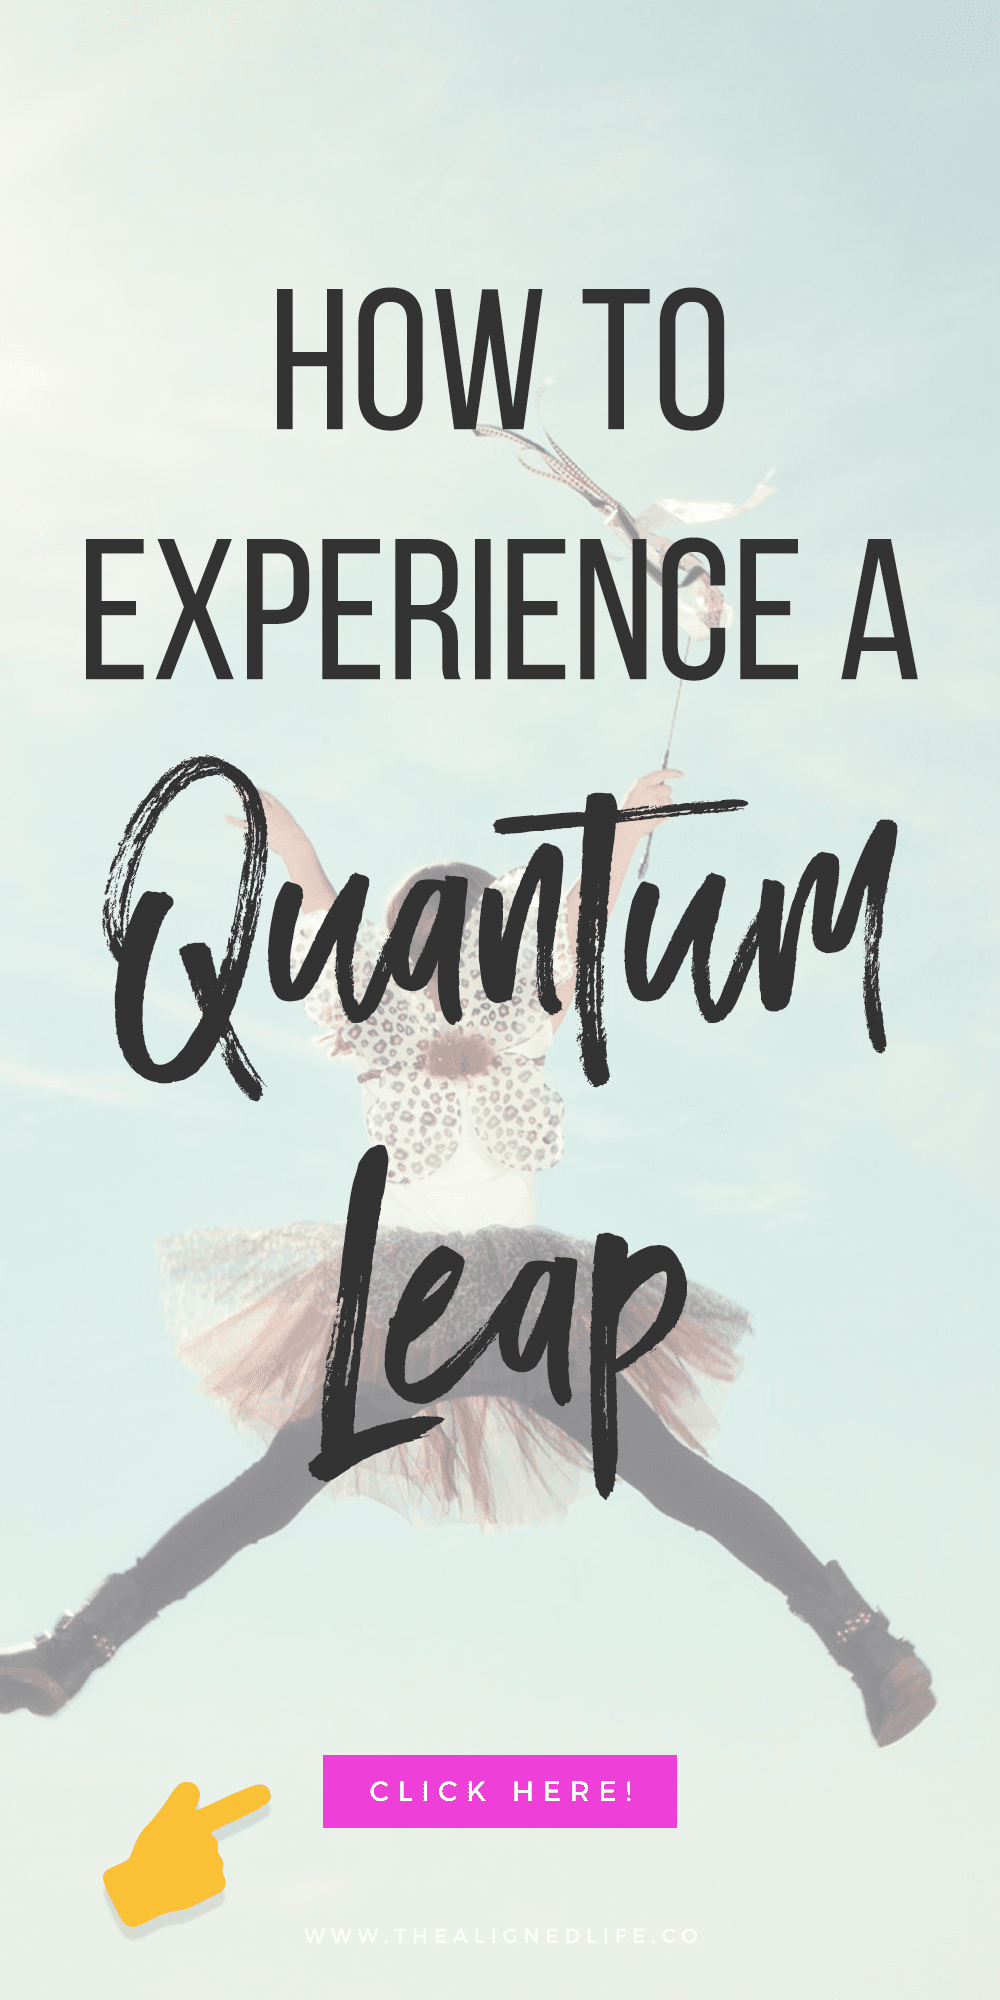 Get Ready To Jump! How To Experience A Quantum Leap